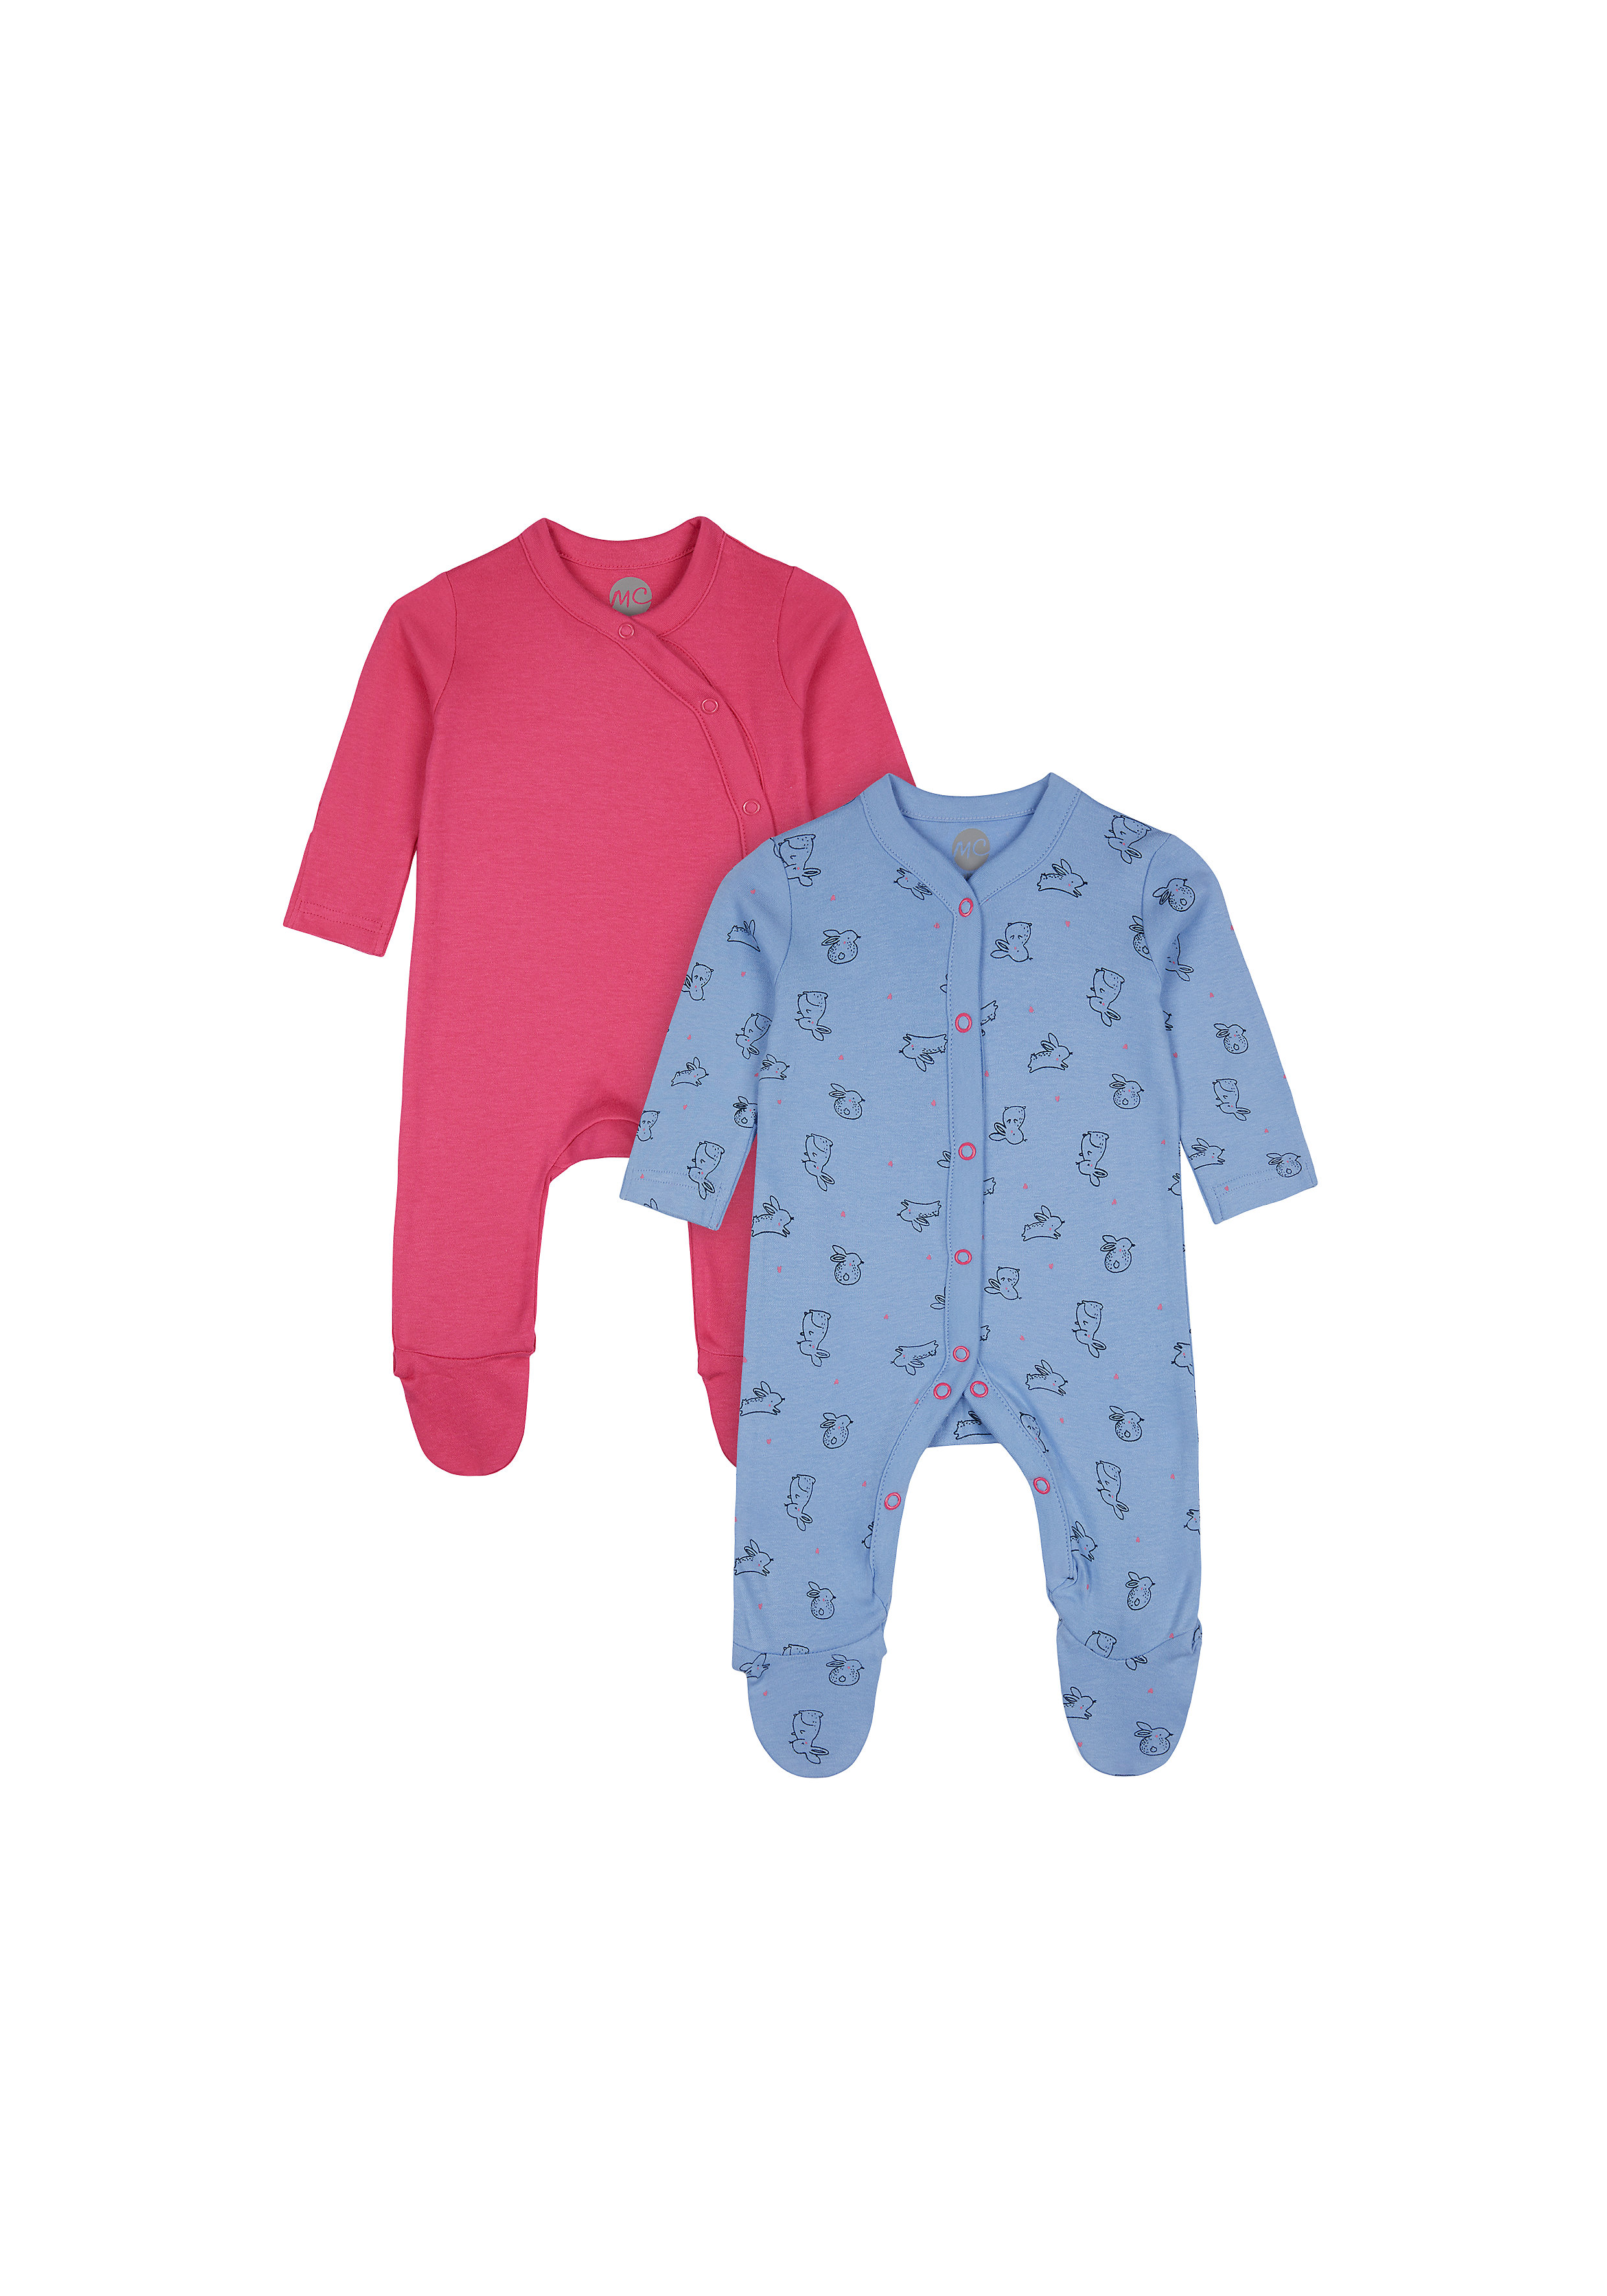 Mothercare | Girls Full Sleeves Romper Bunny Print - Pack Of 2 - Pink Blue